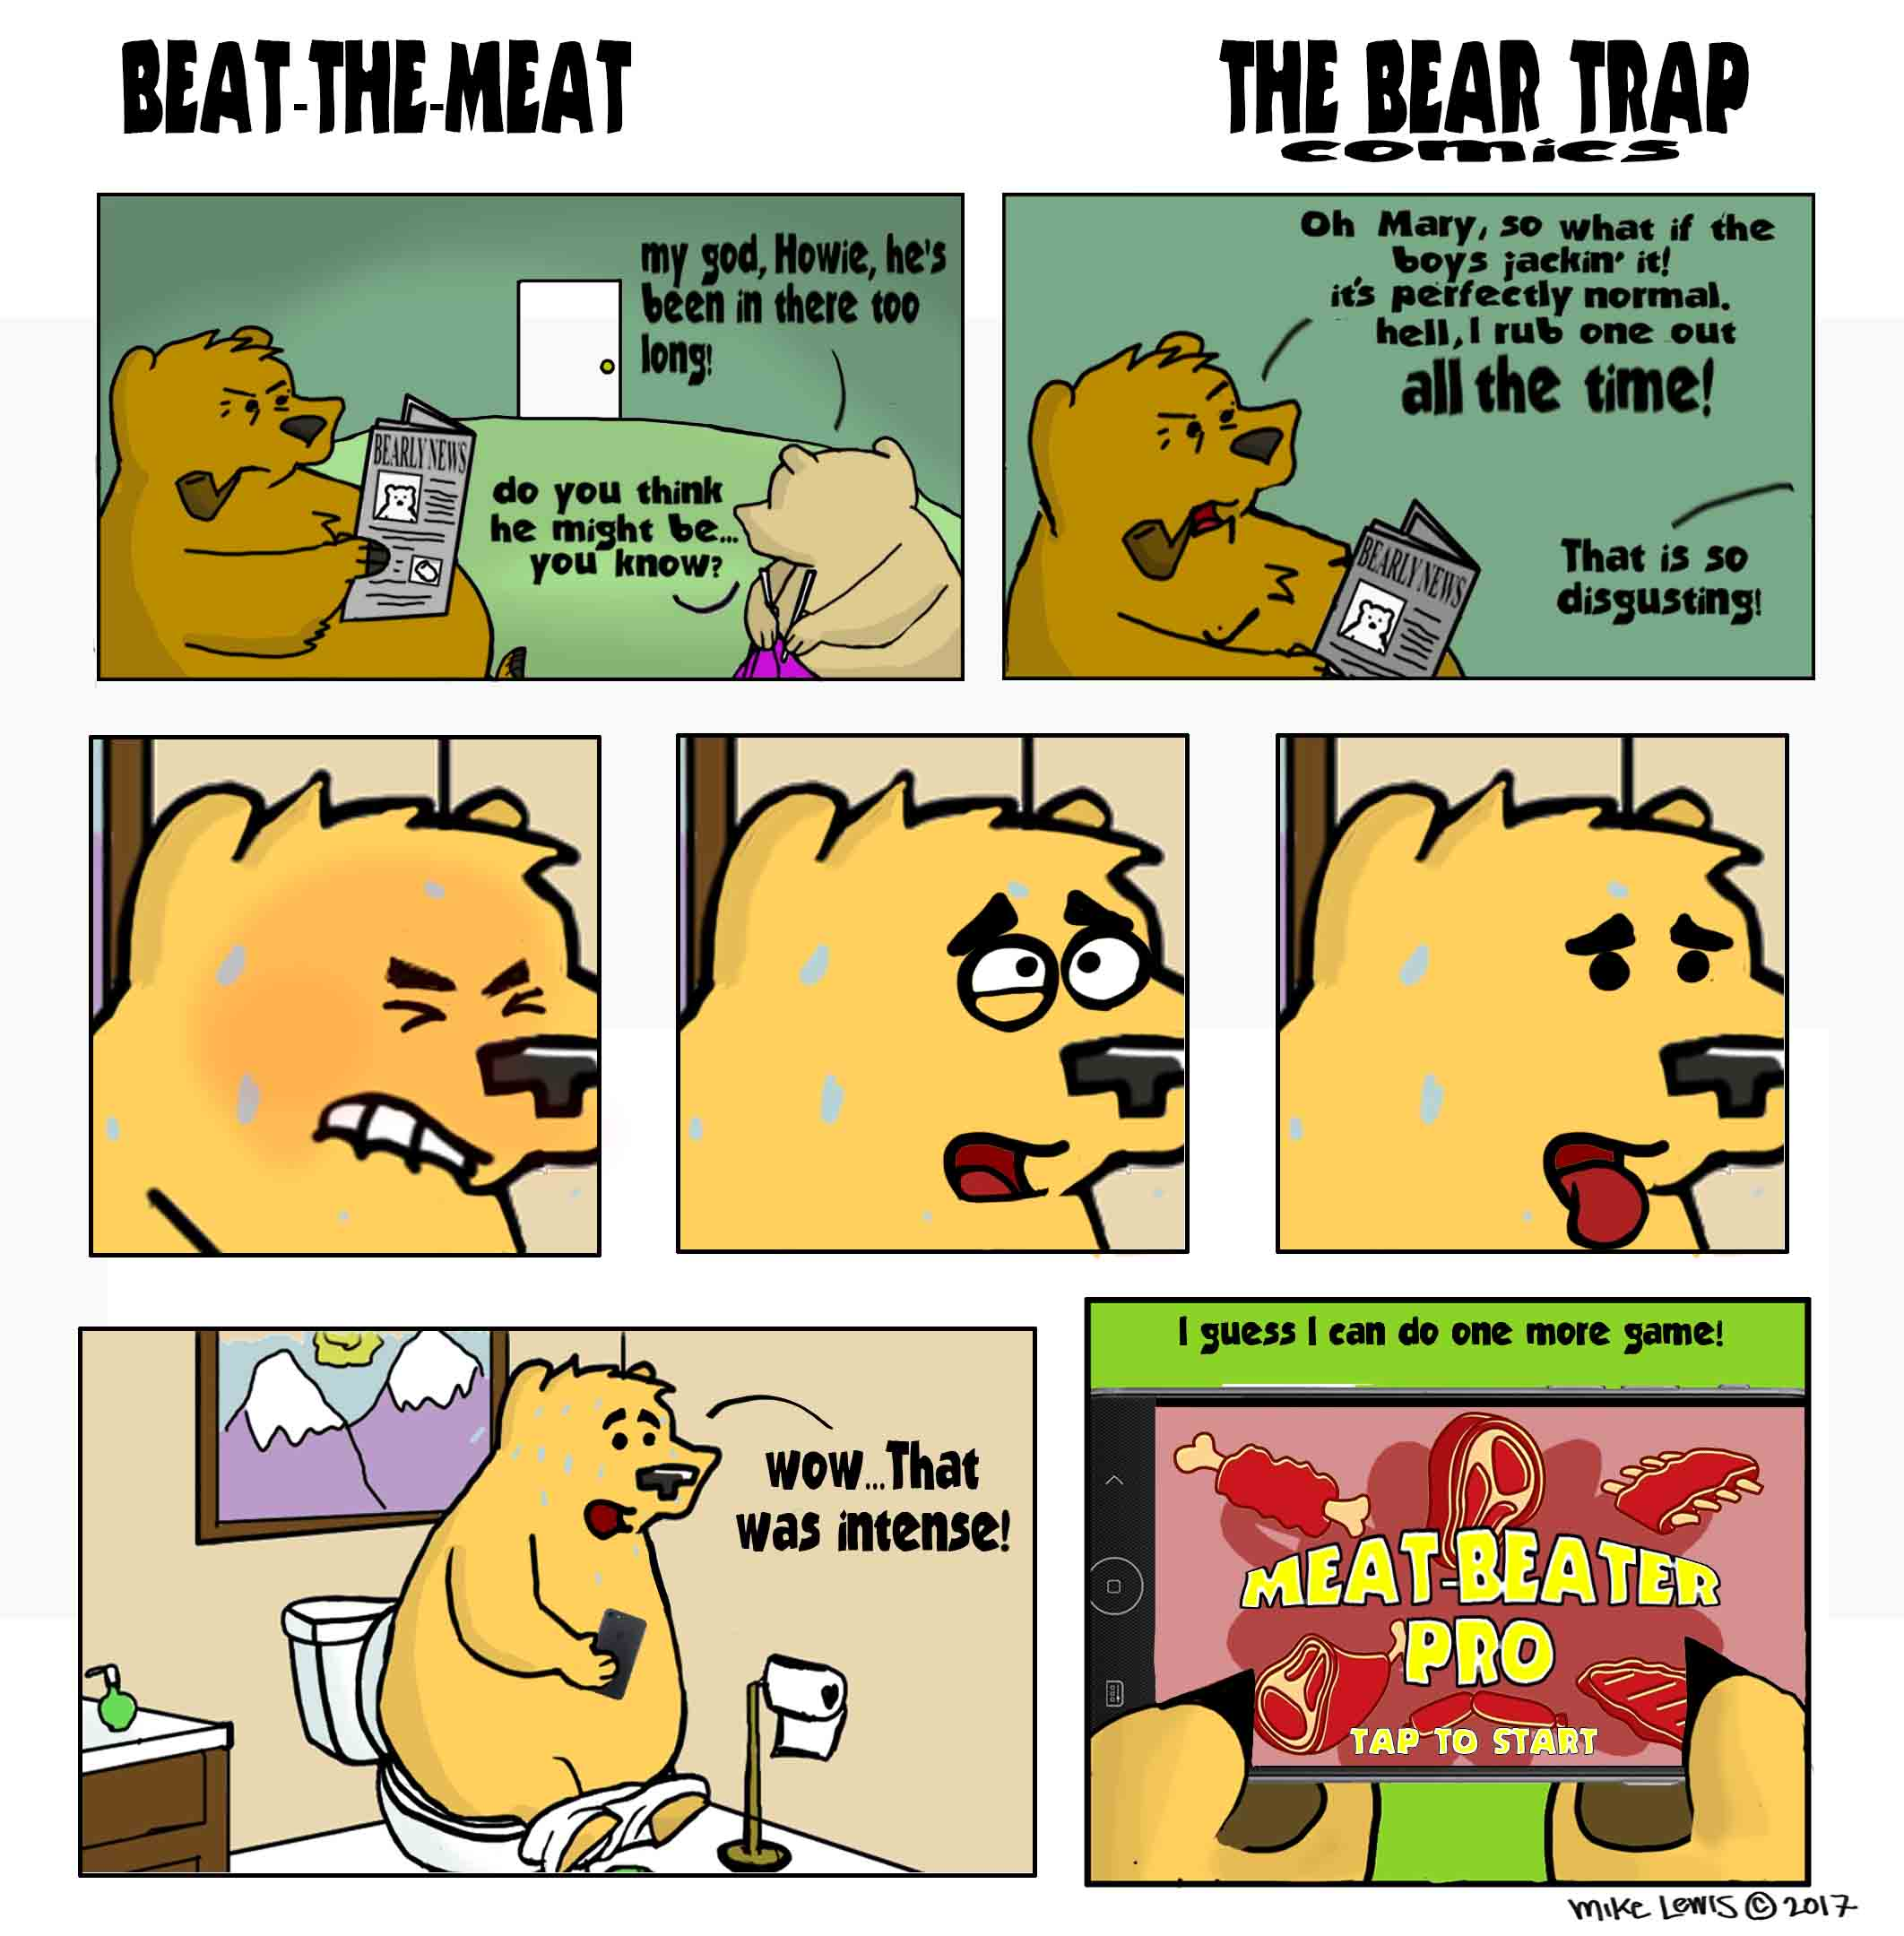 Beat-the-meat